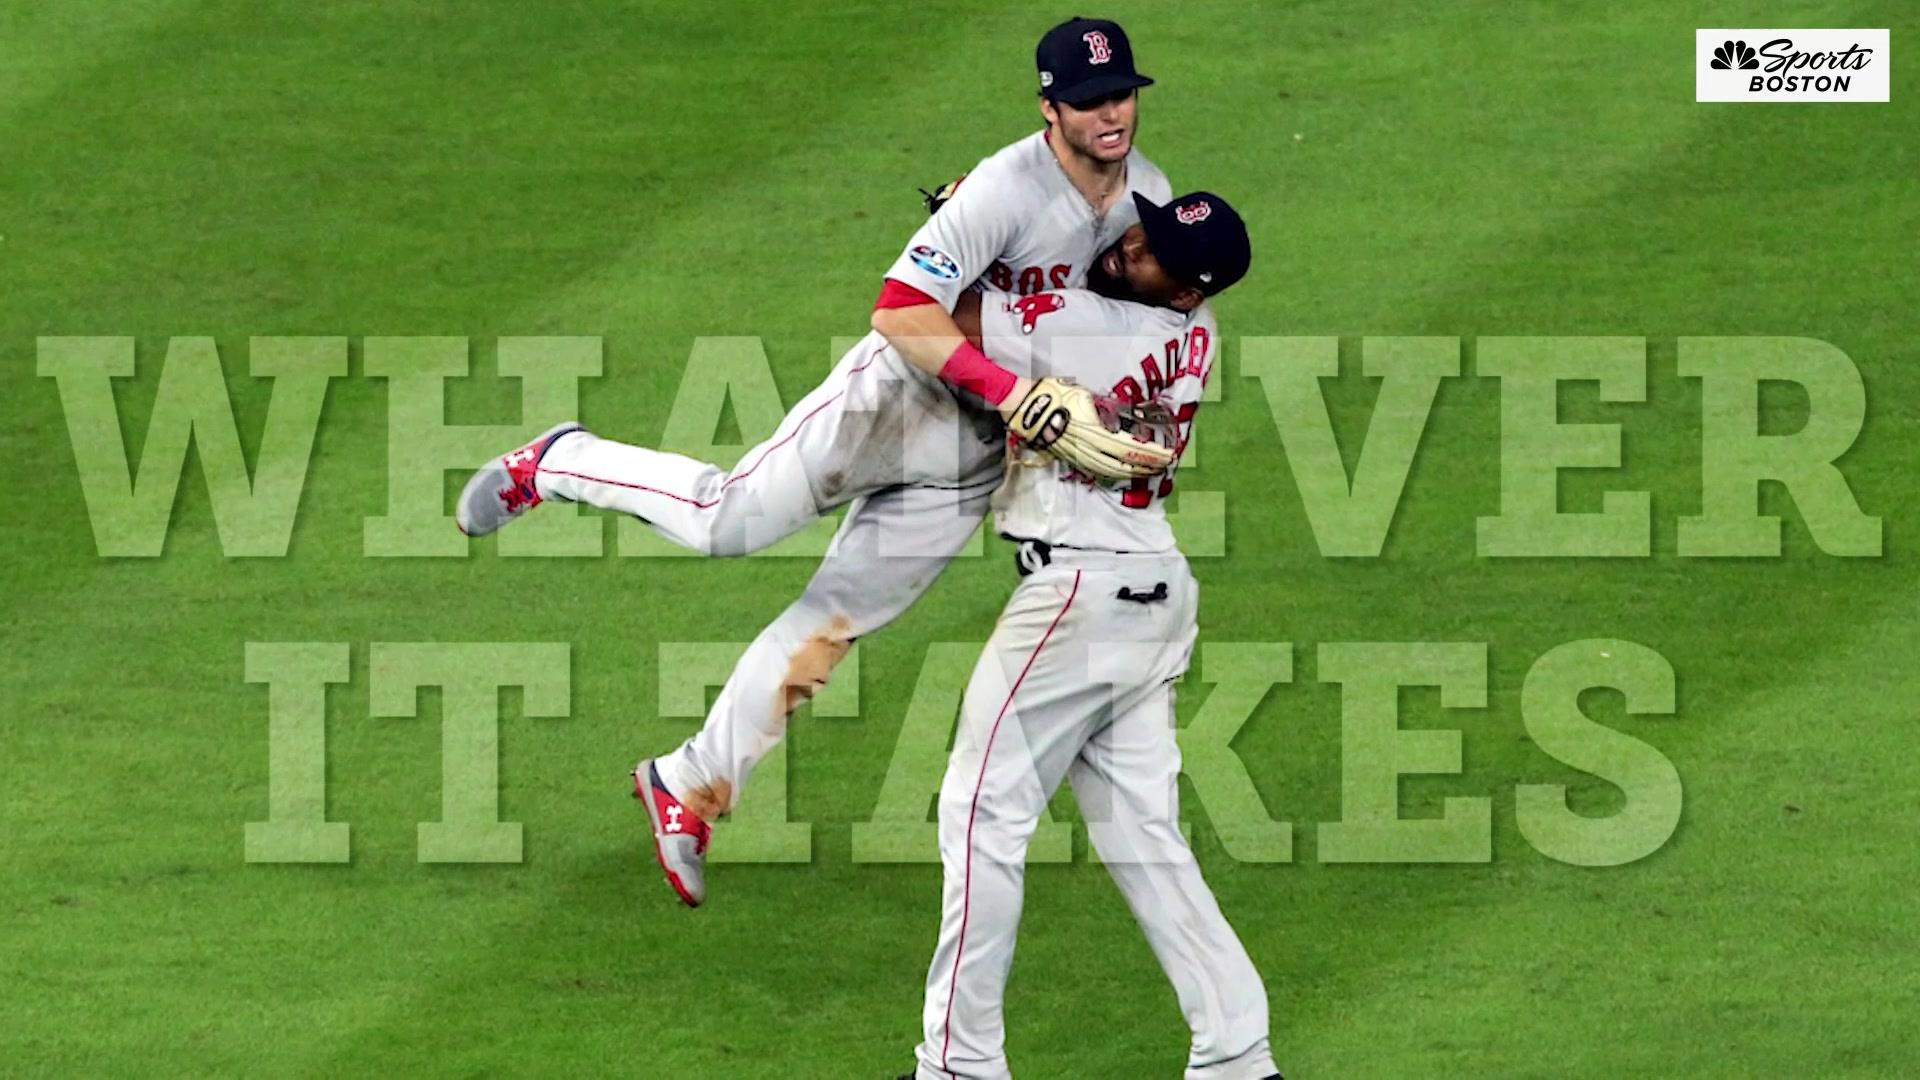 Mazz: The Red Sox will do 'absolutely whatever it takes'